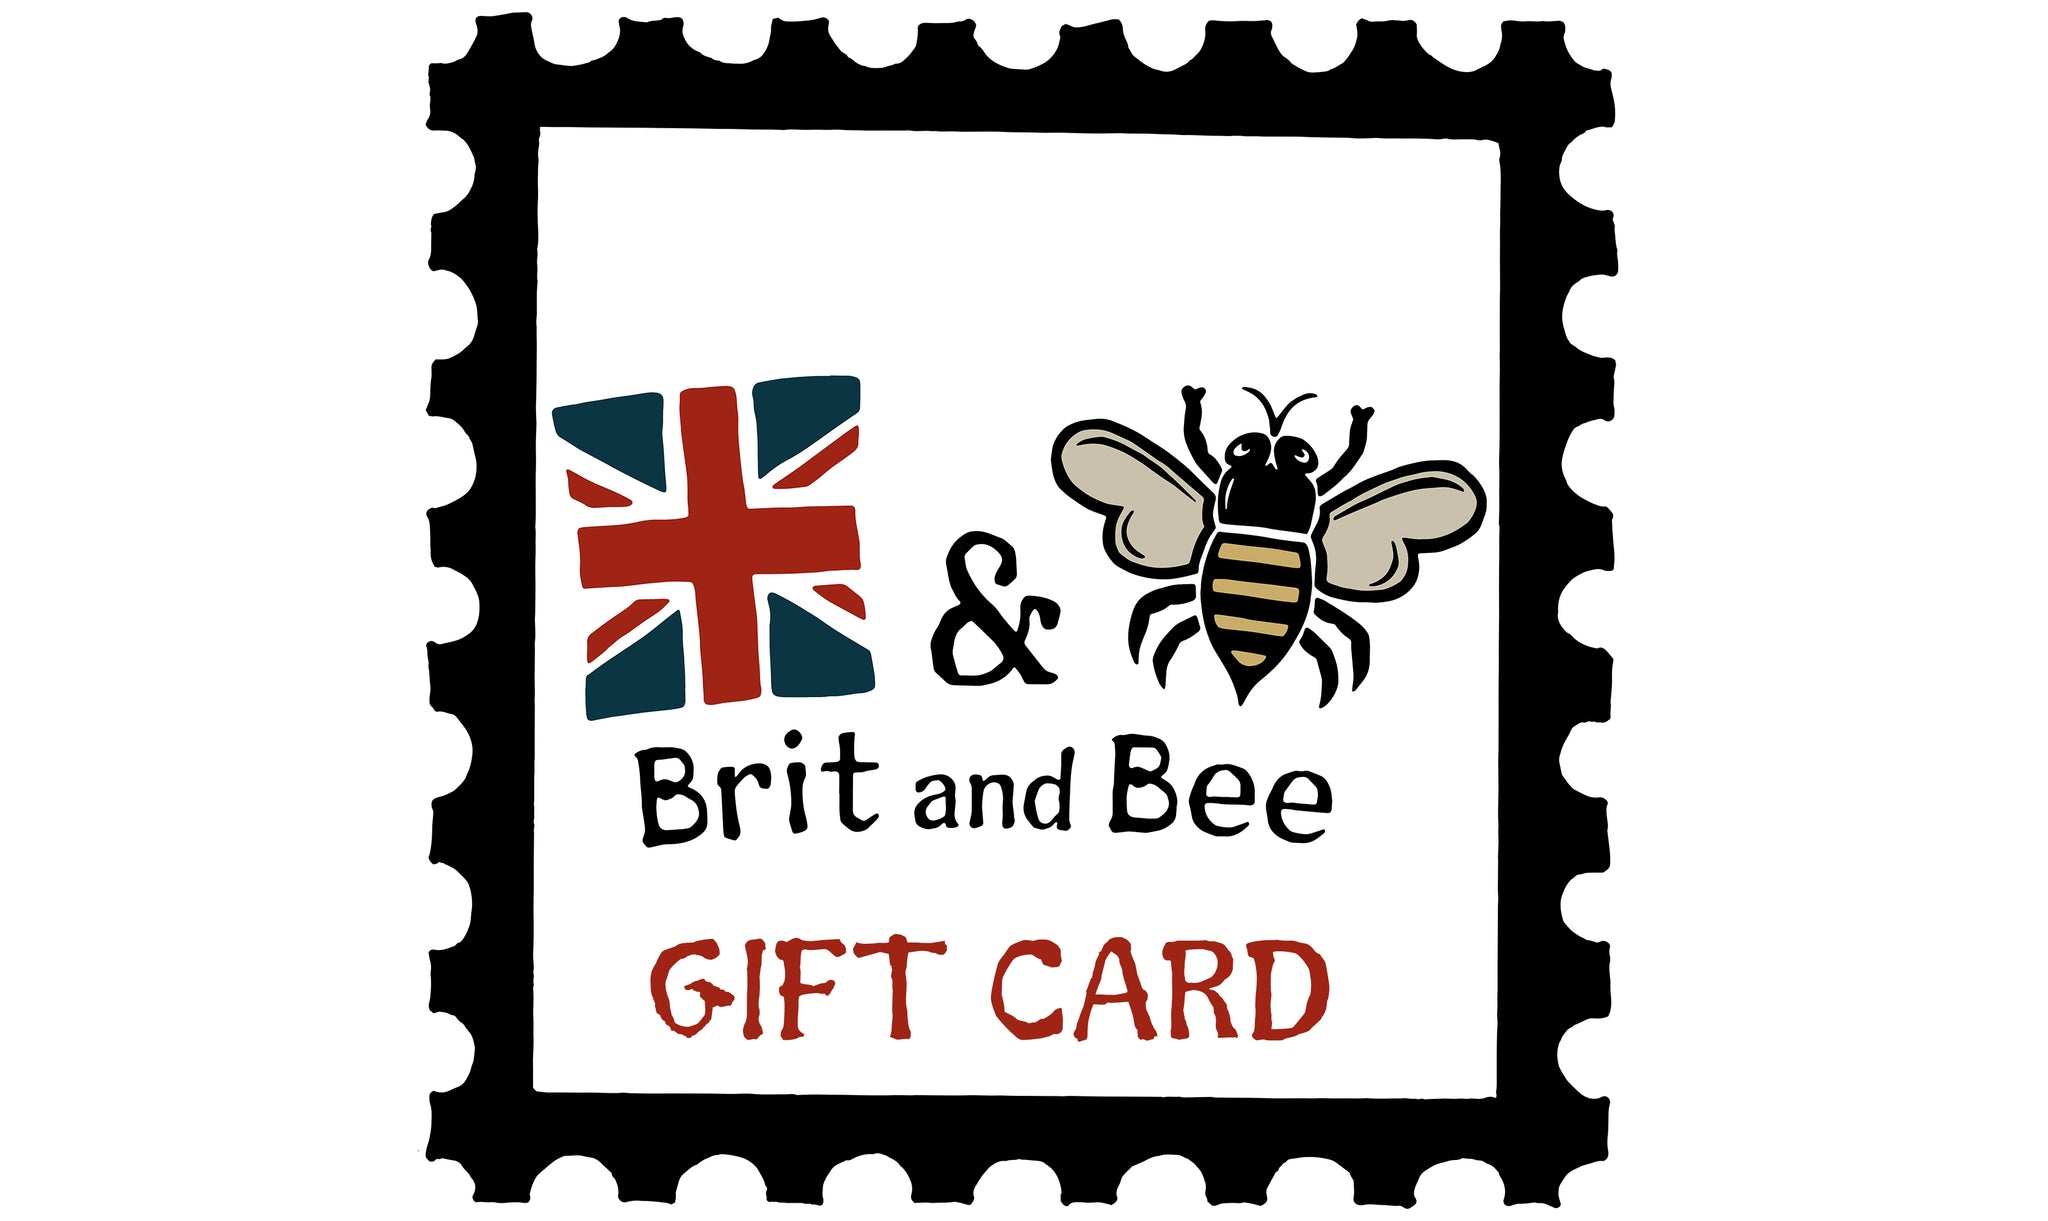 Brit and Bee Gift Card